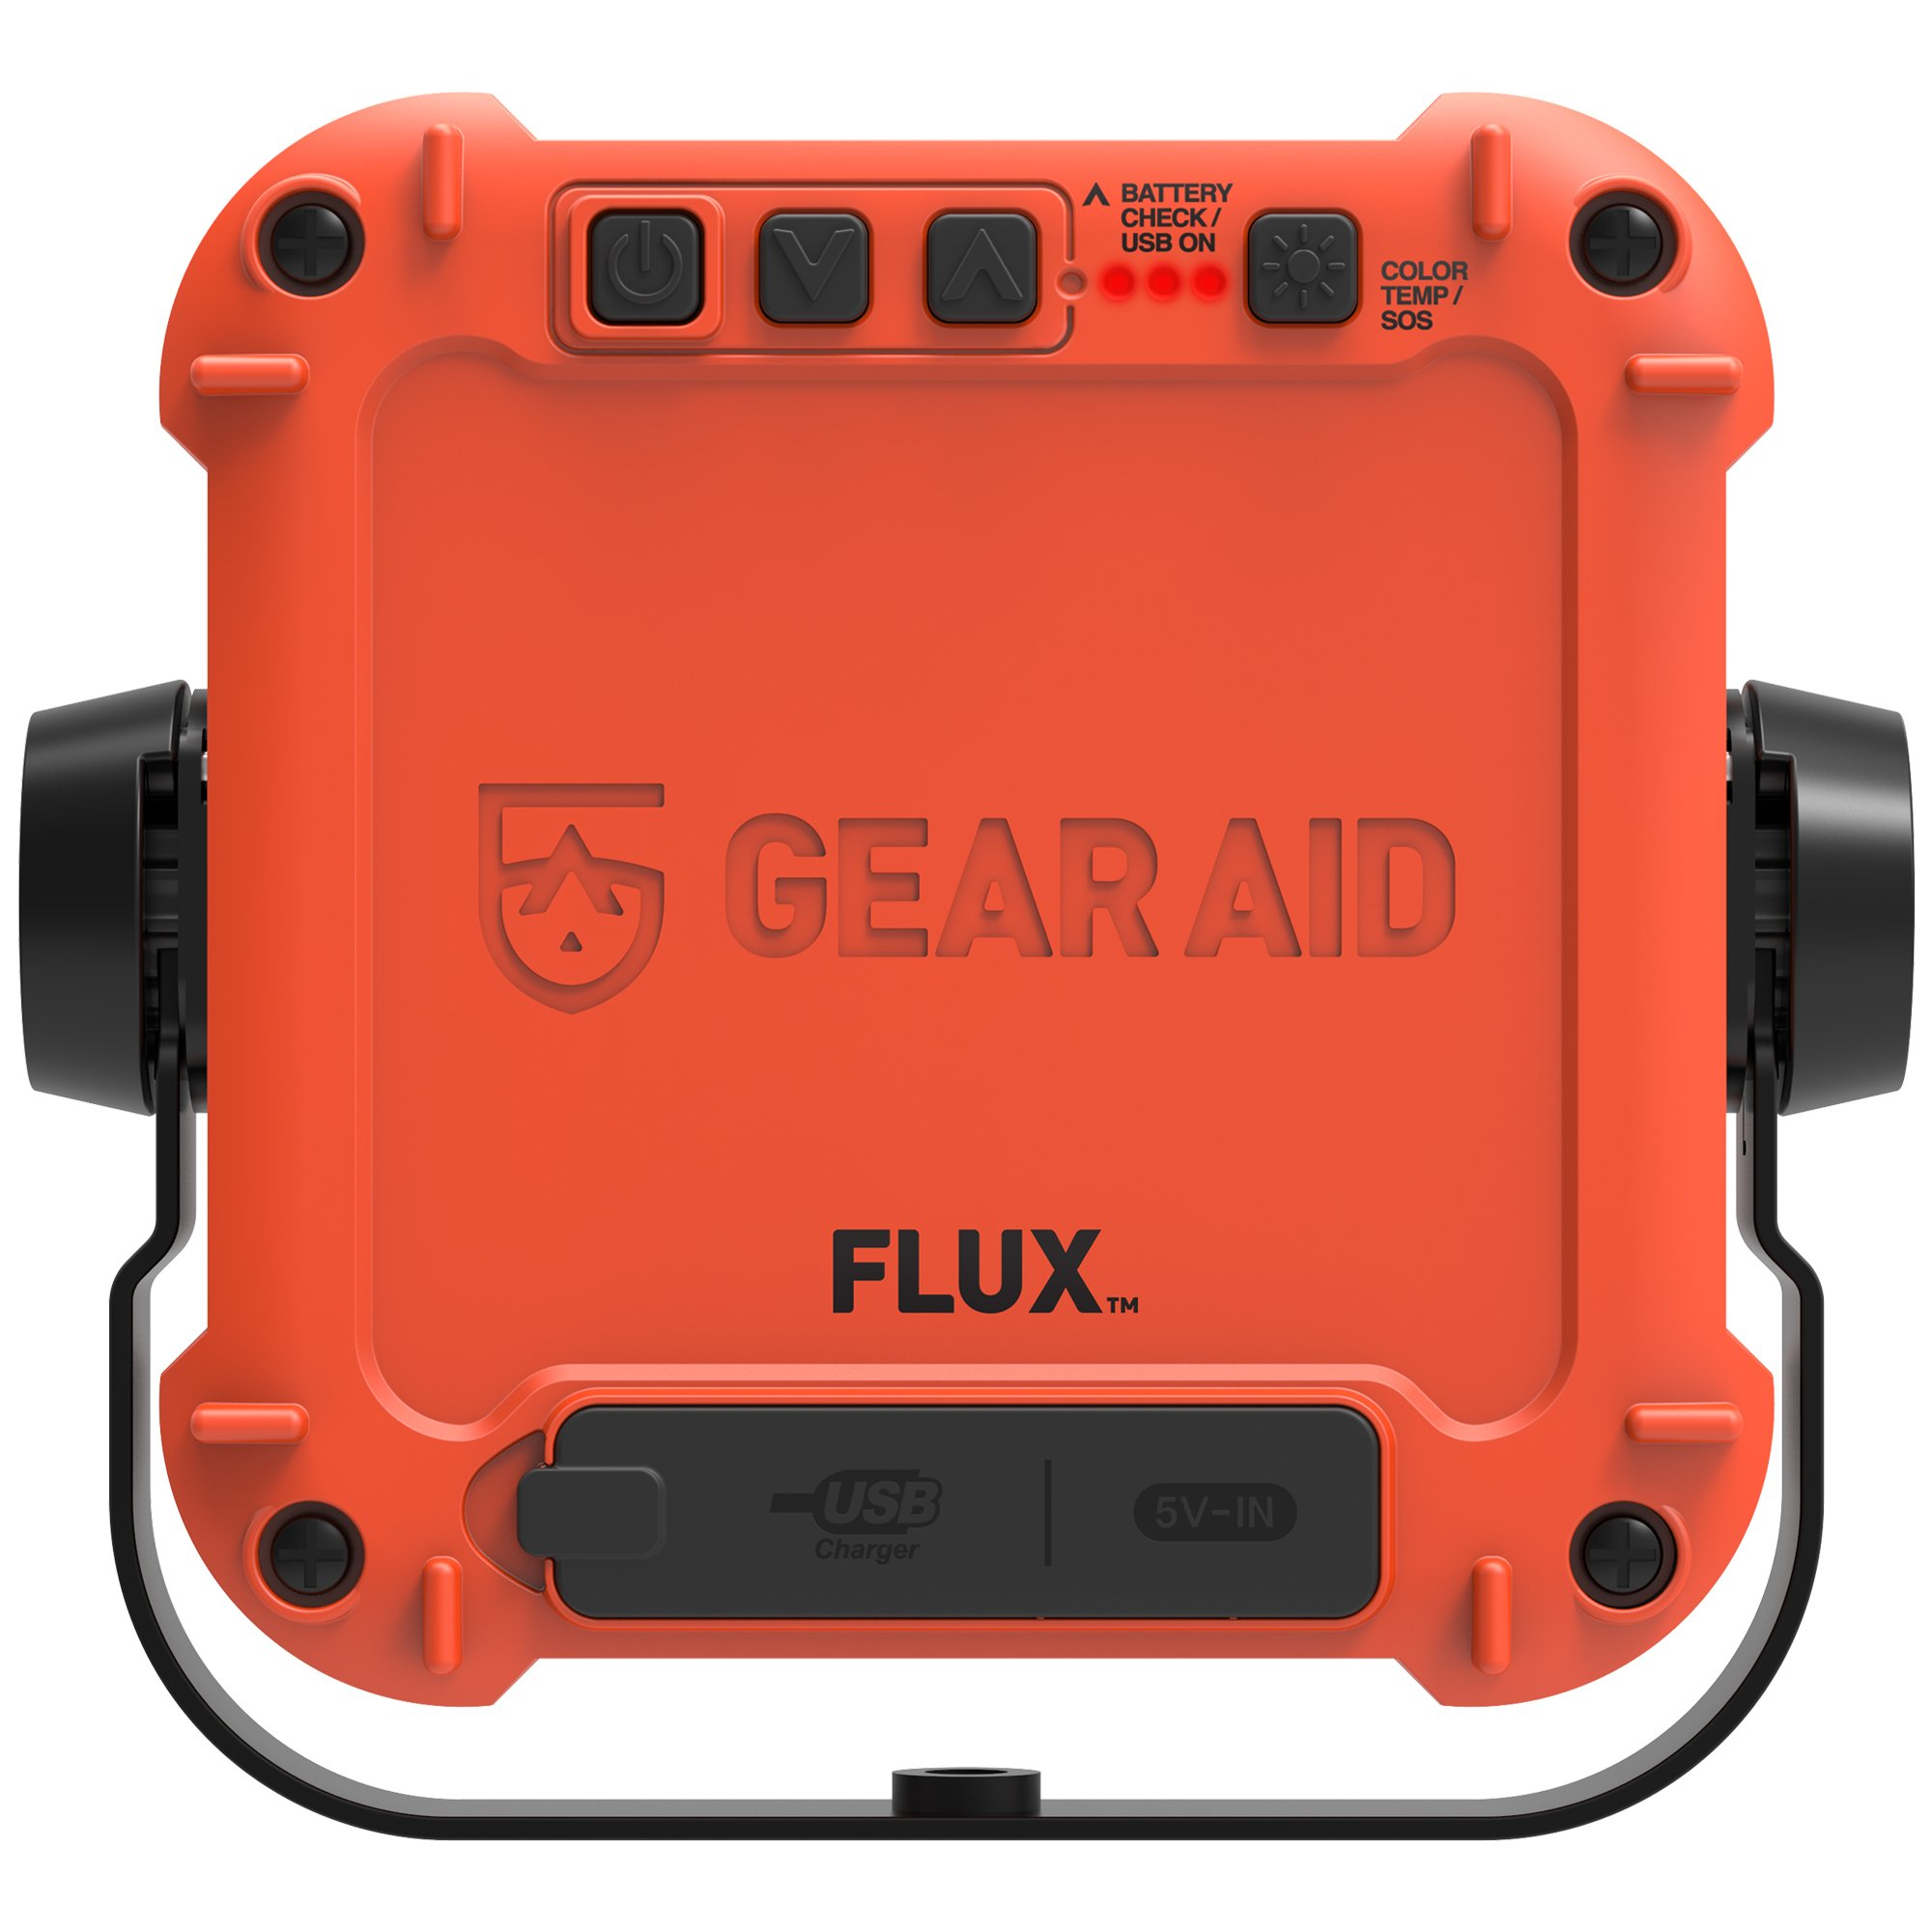 Gear Aid FLUX 20,800 mAh Rechargeable Light and Portable Power Station with 82 LEDs by Gear Aid (Image #3)